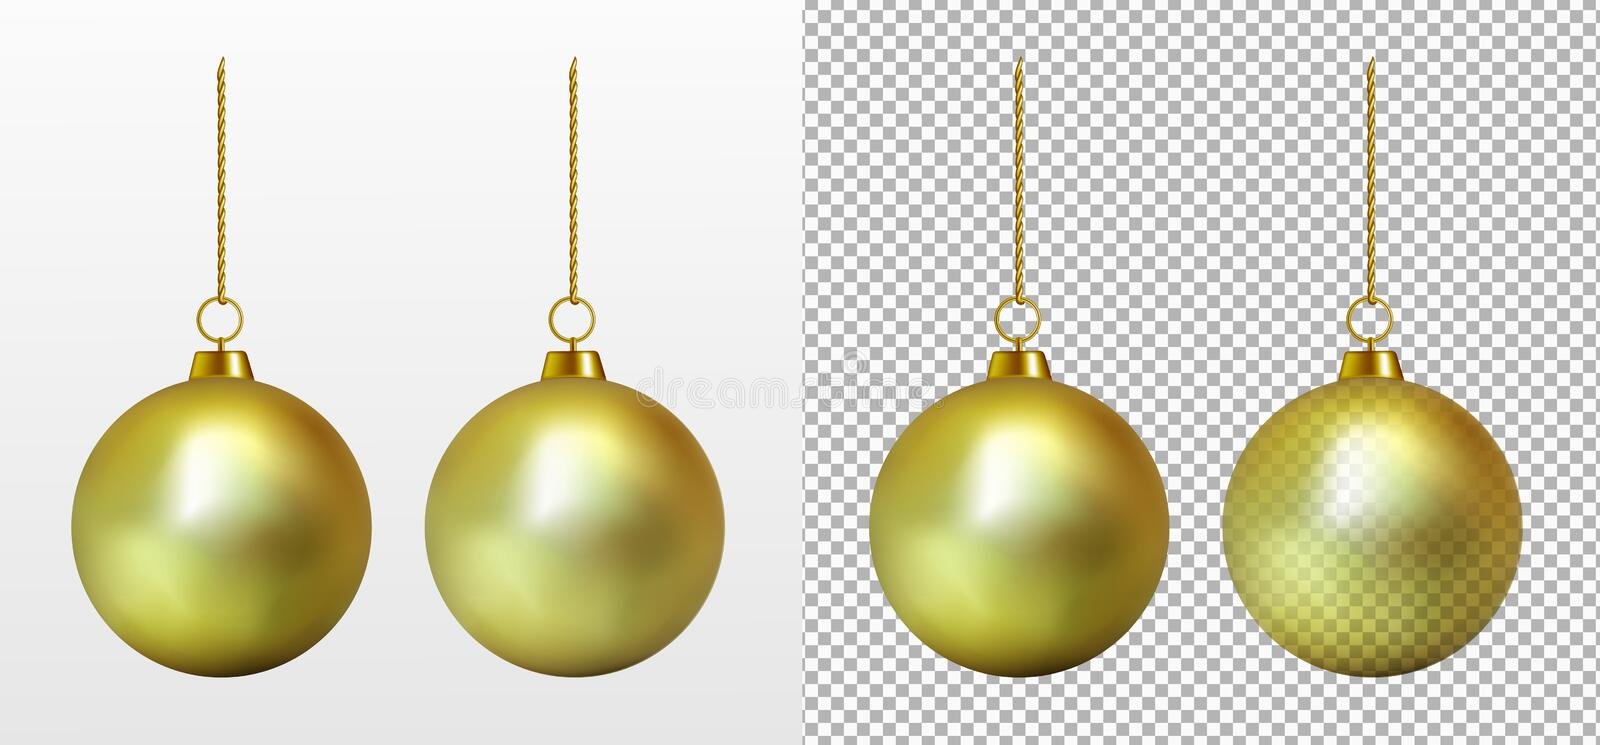 Realistic transparent gold Christmas ball. New year toy.  royalty free illustration